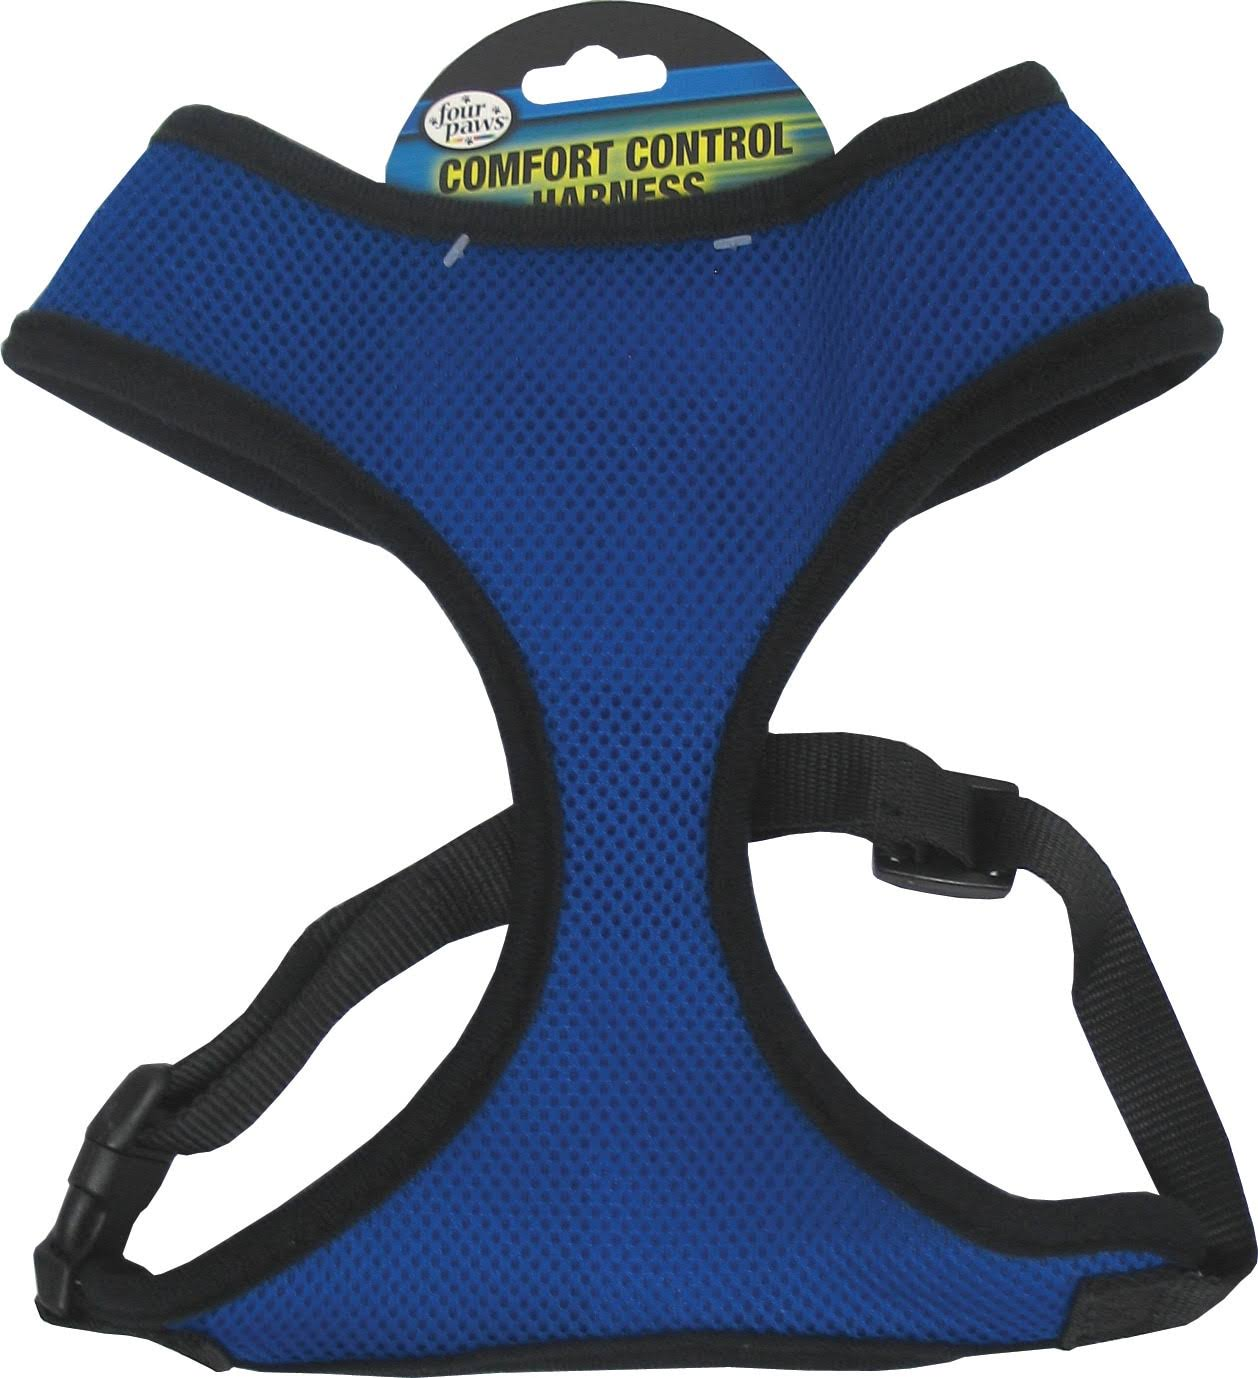 Four Paws Comfort Control Dog Harness - Blue